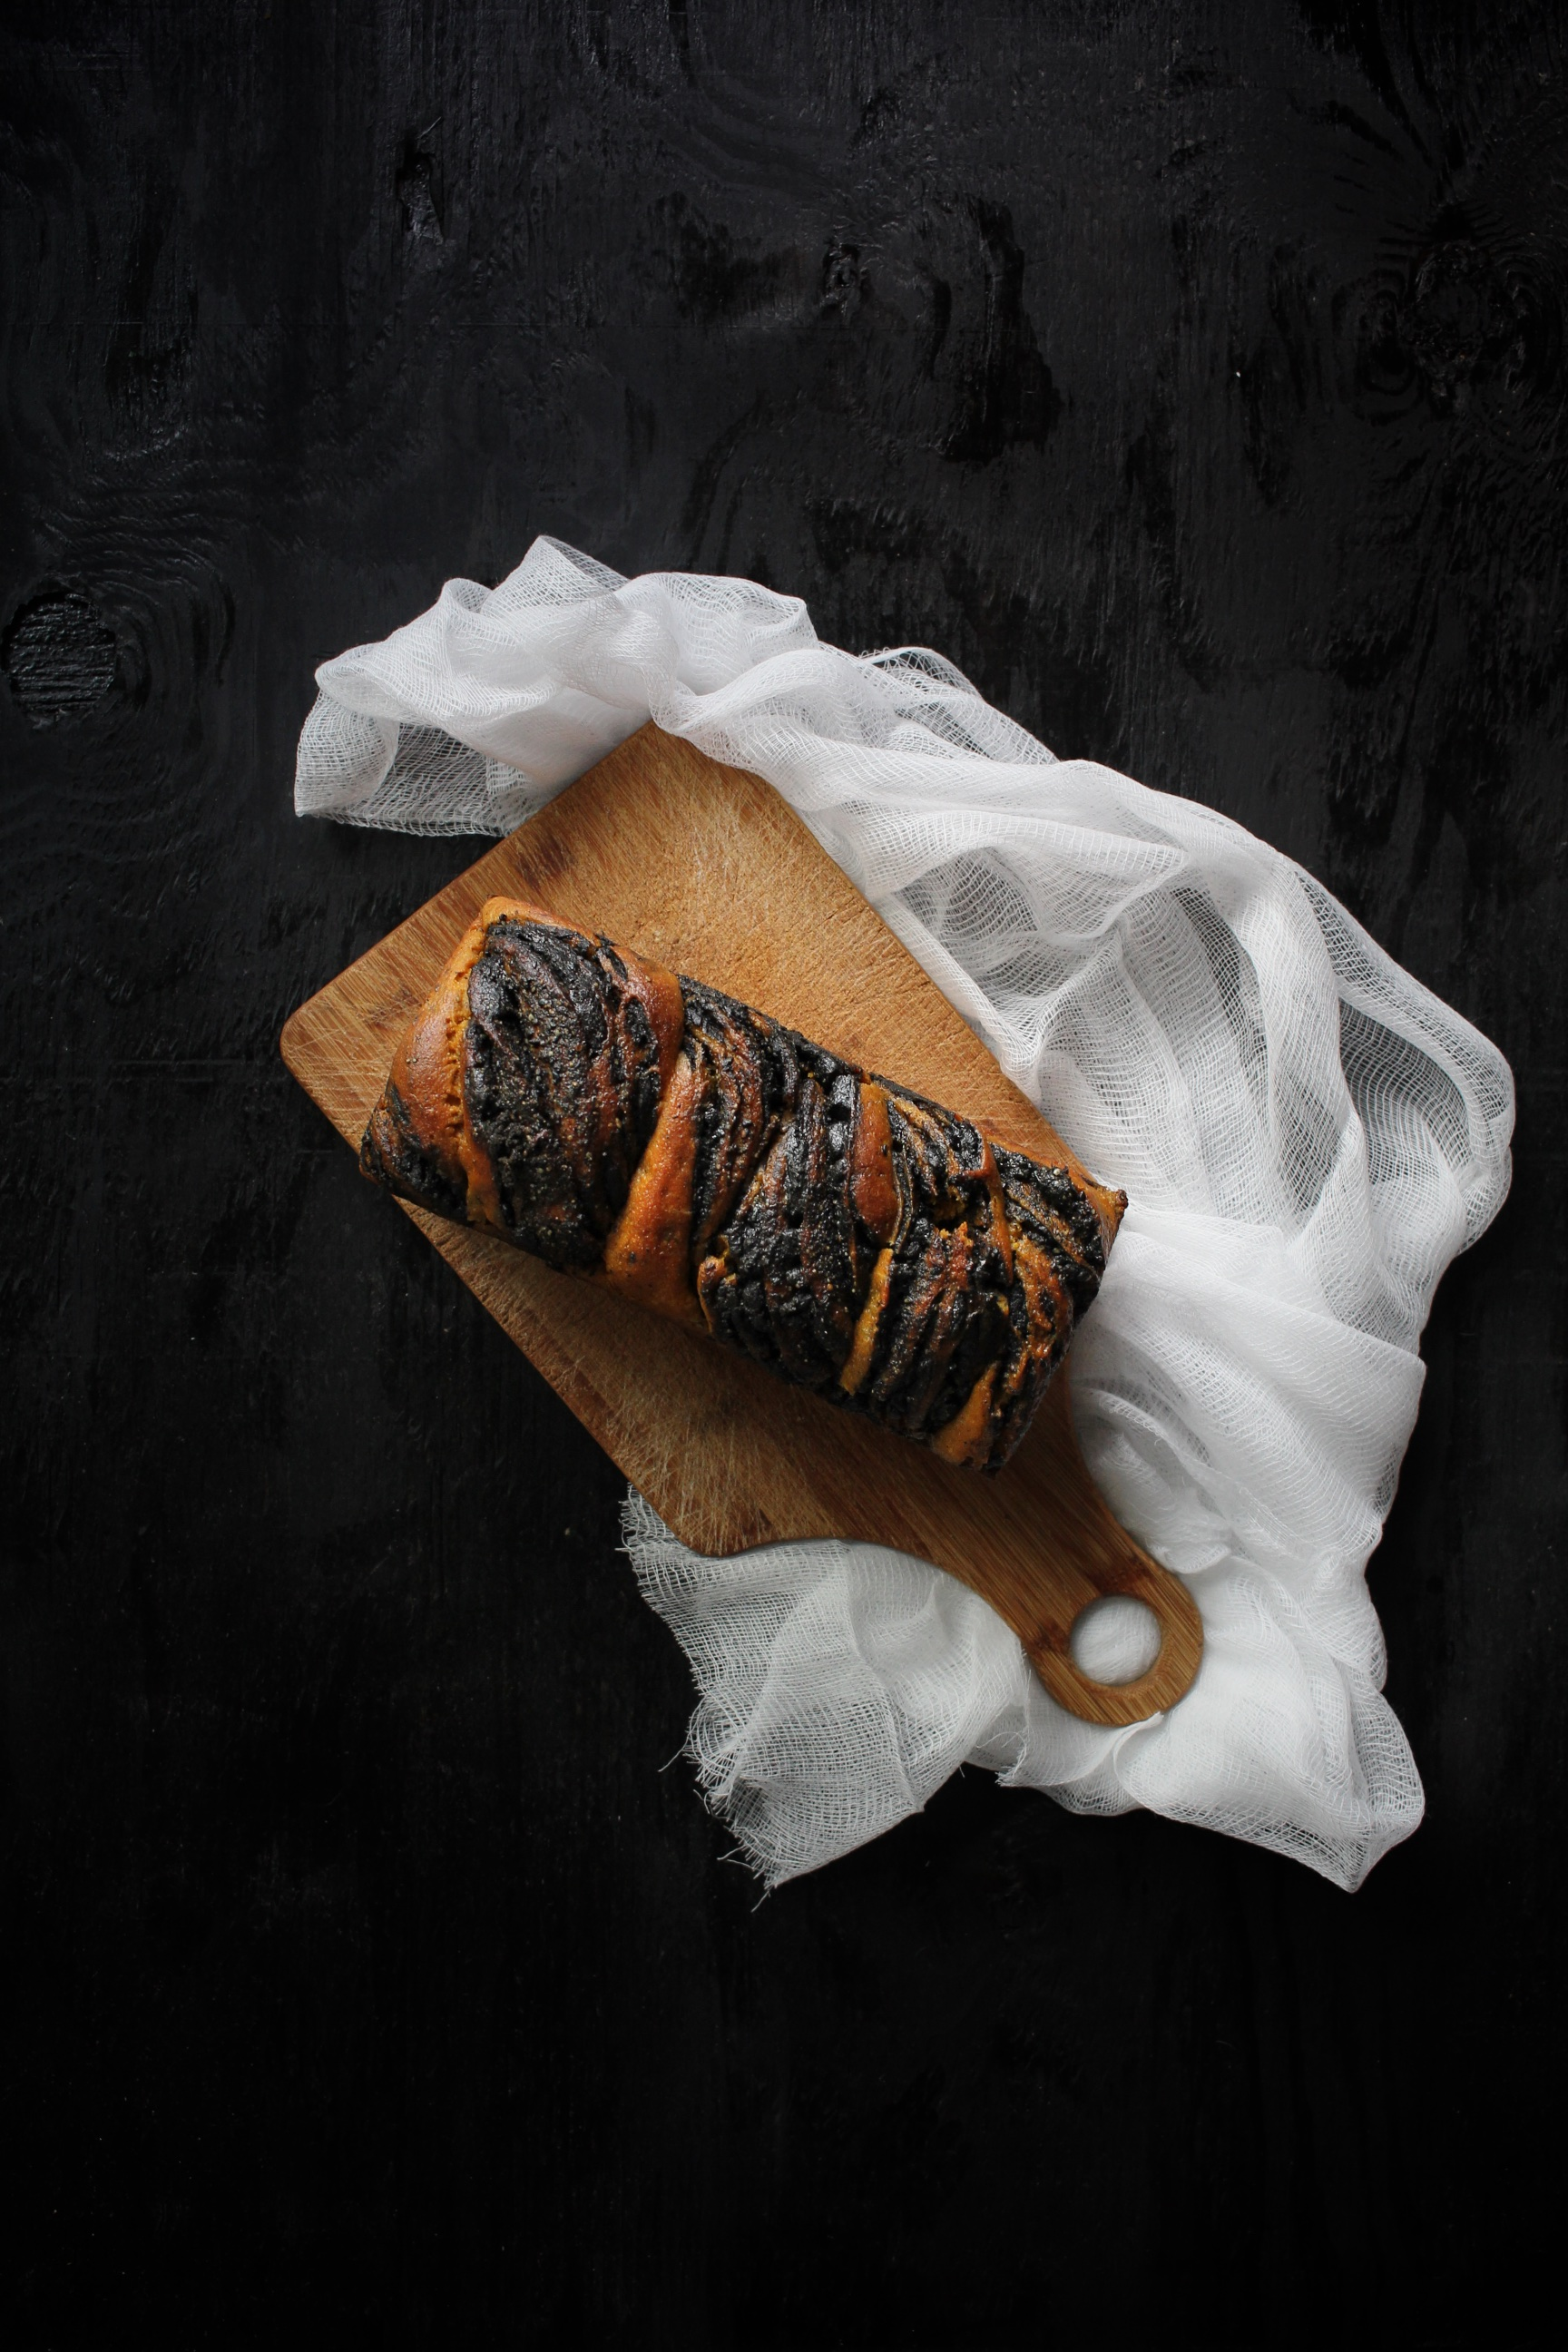 Sourdough Kabocha and Black Sesame Babka